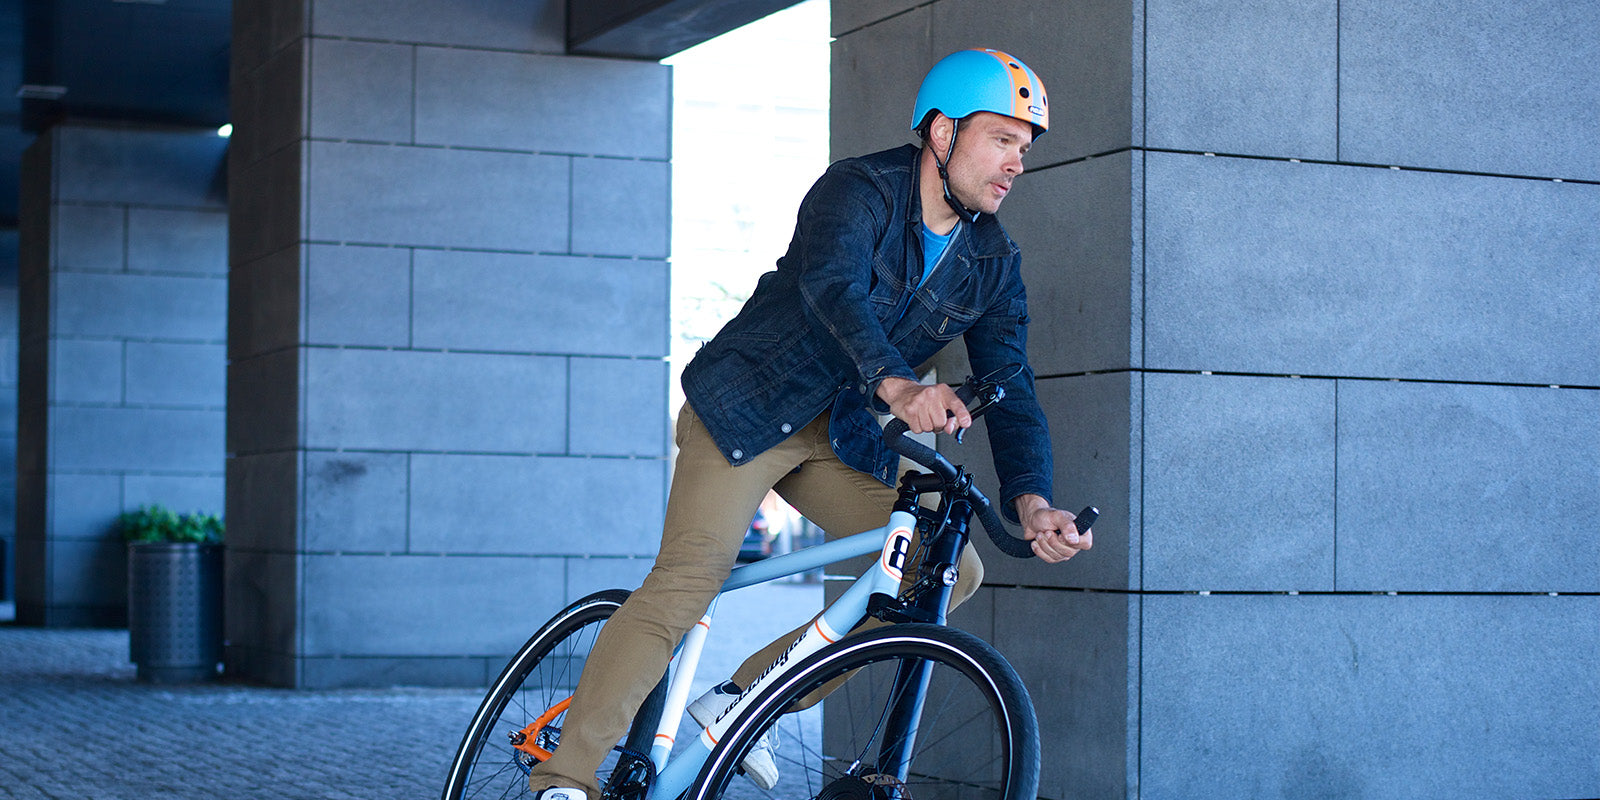 Man riding bicycle with Melon Urban Active Double Orange Blue Bicycle double striped bicycle helmet